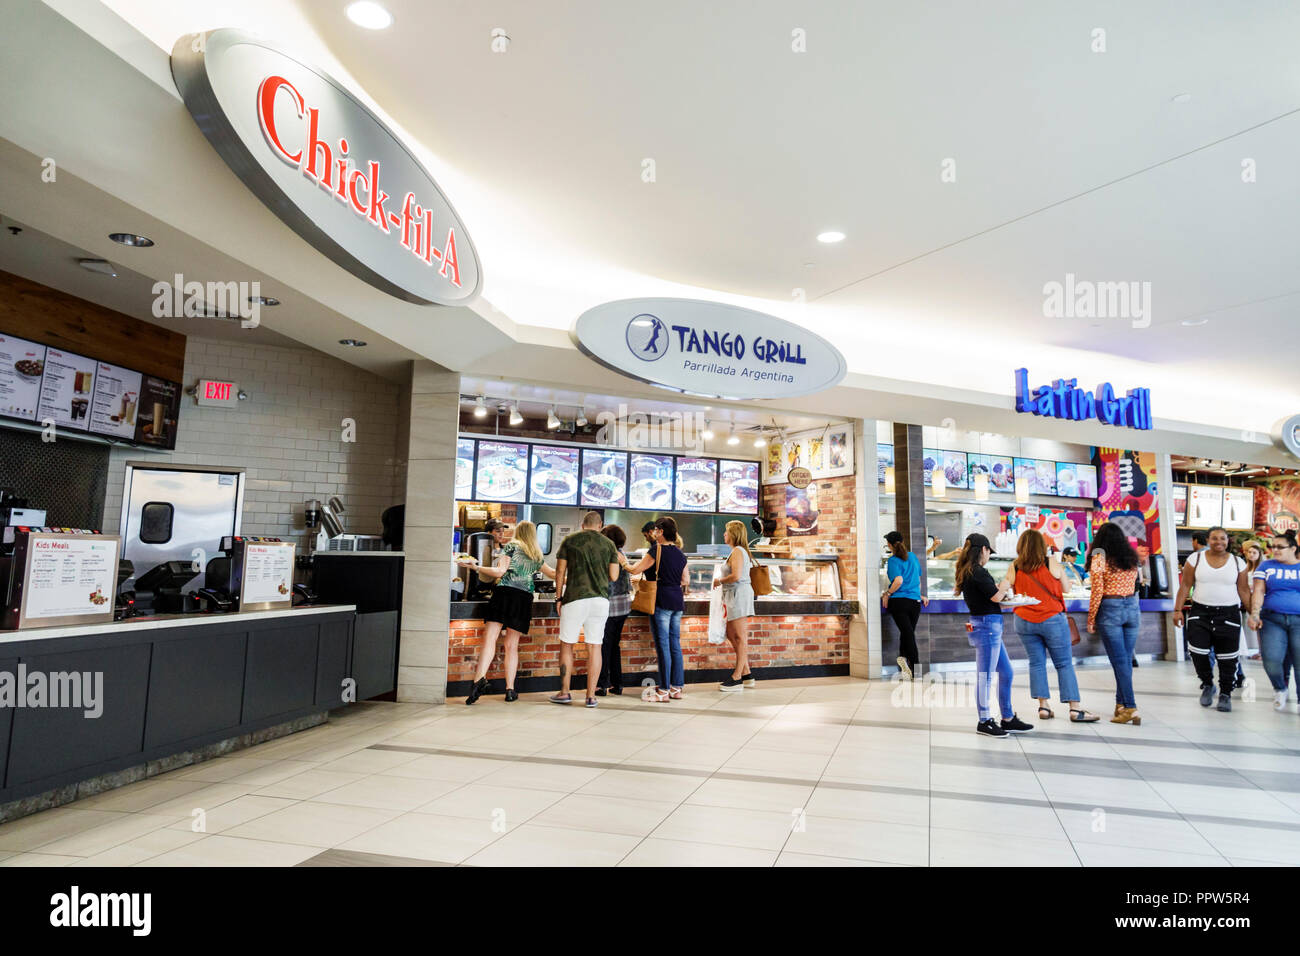 Miami Florida Kendall Dadeland Mall shopping food court plaza Chick-fil-A closed Sunday Sundays Tango Grill Latin Grill counters - Stock Image